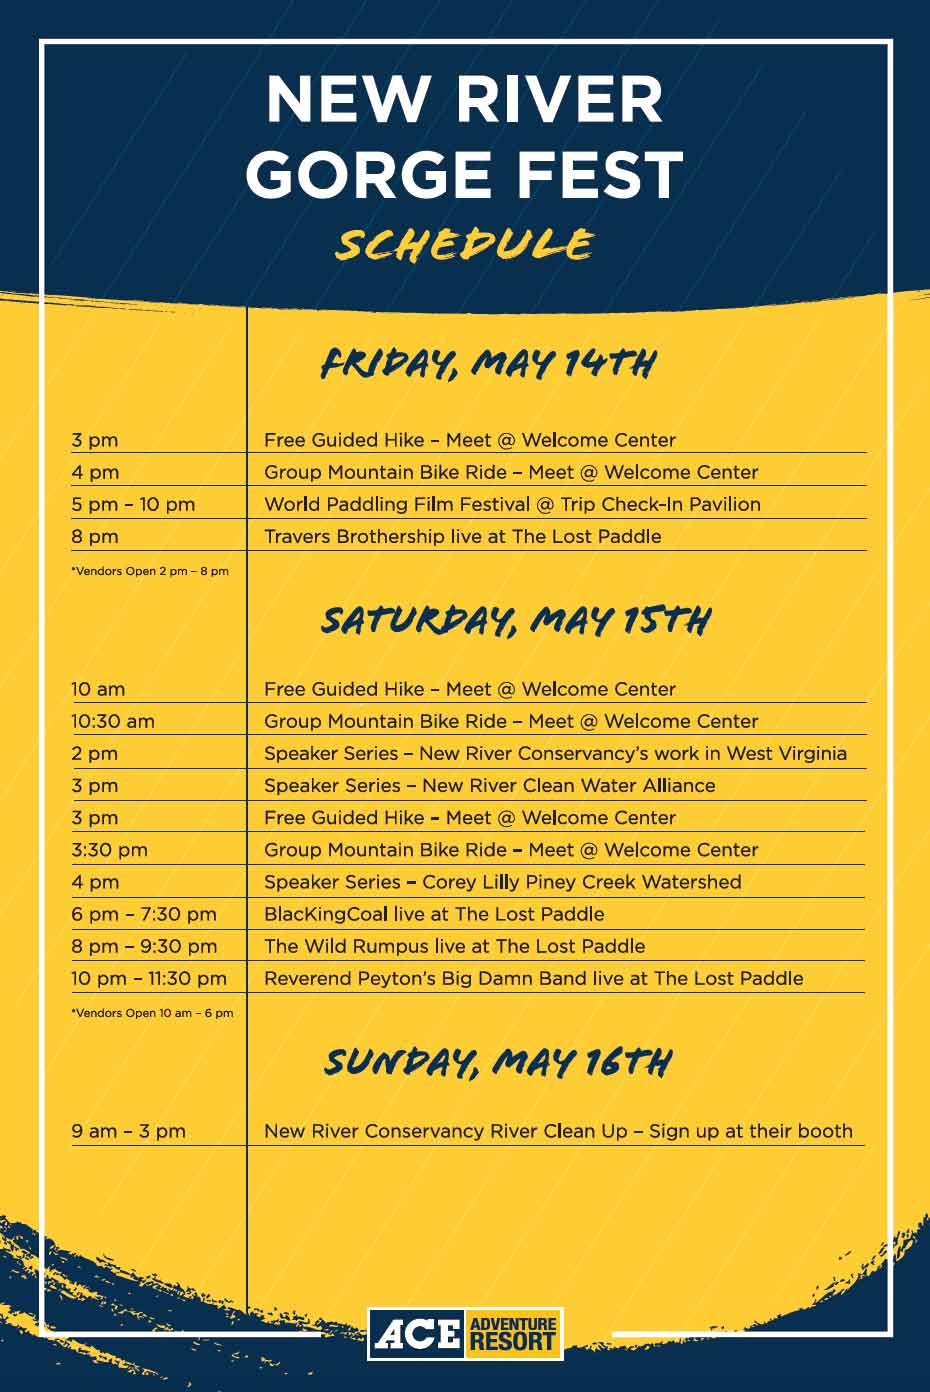 Schedule for New River Gorge Festival